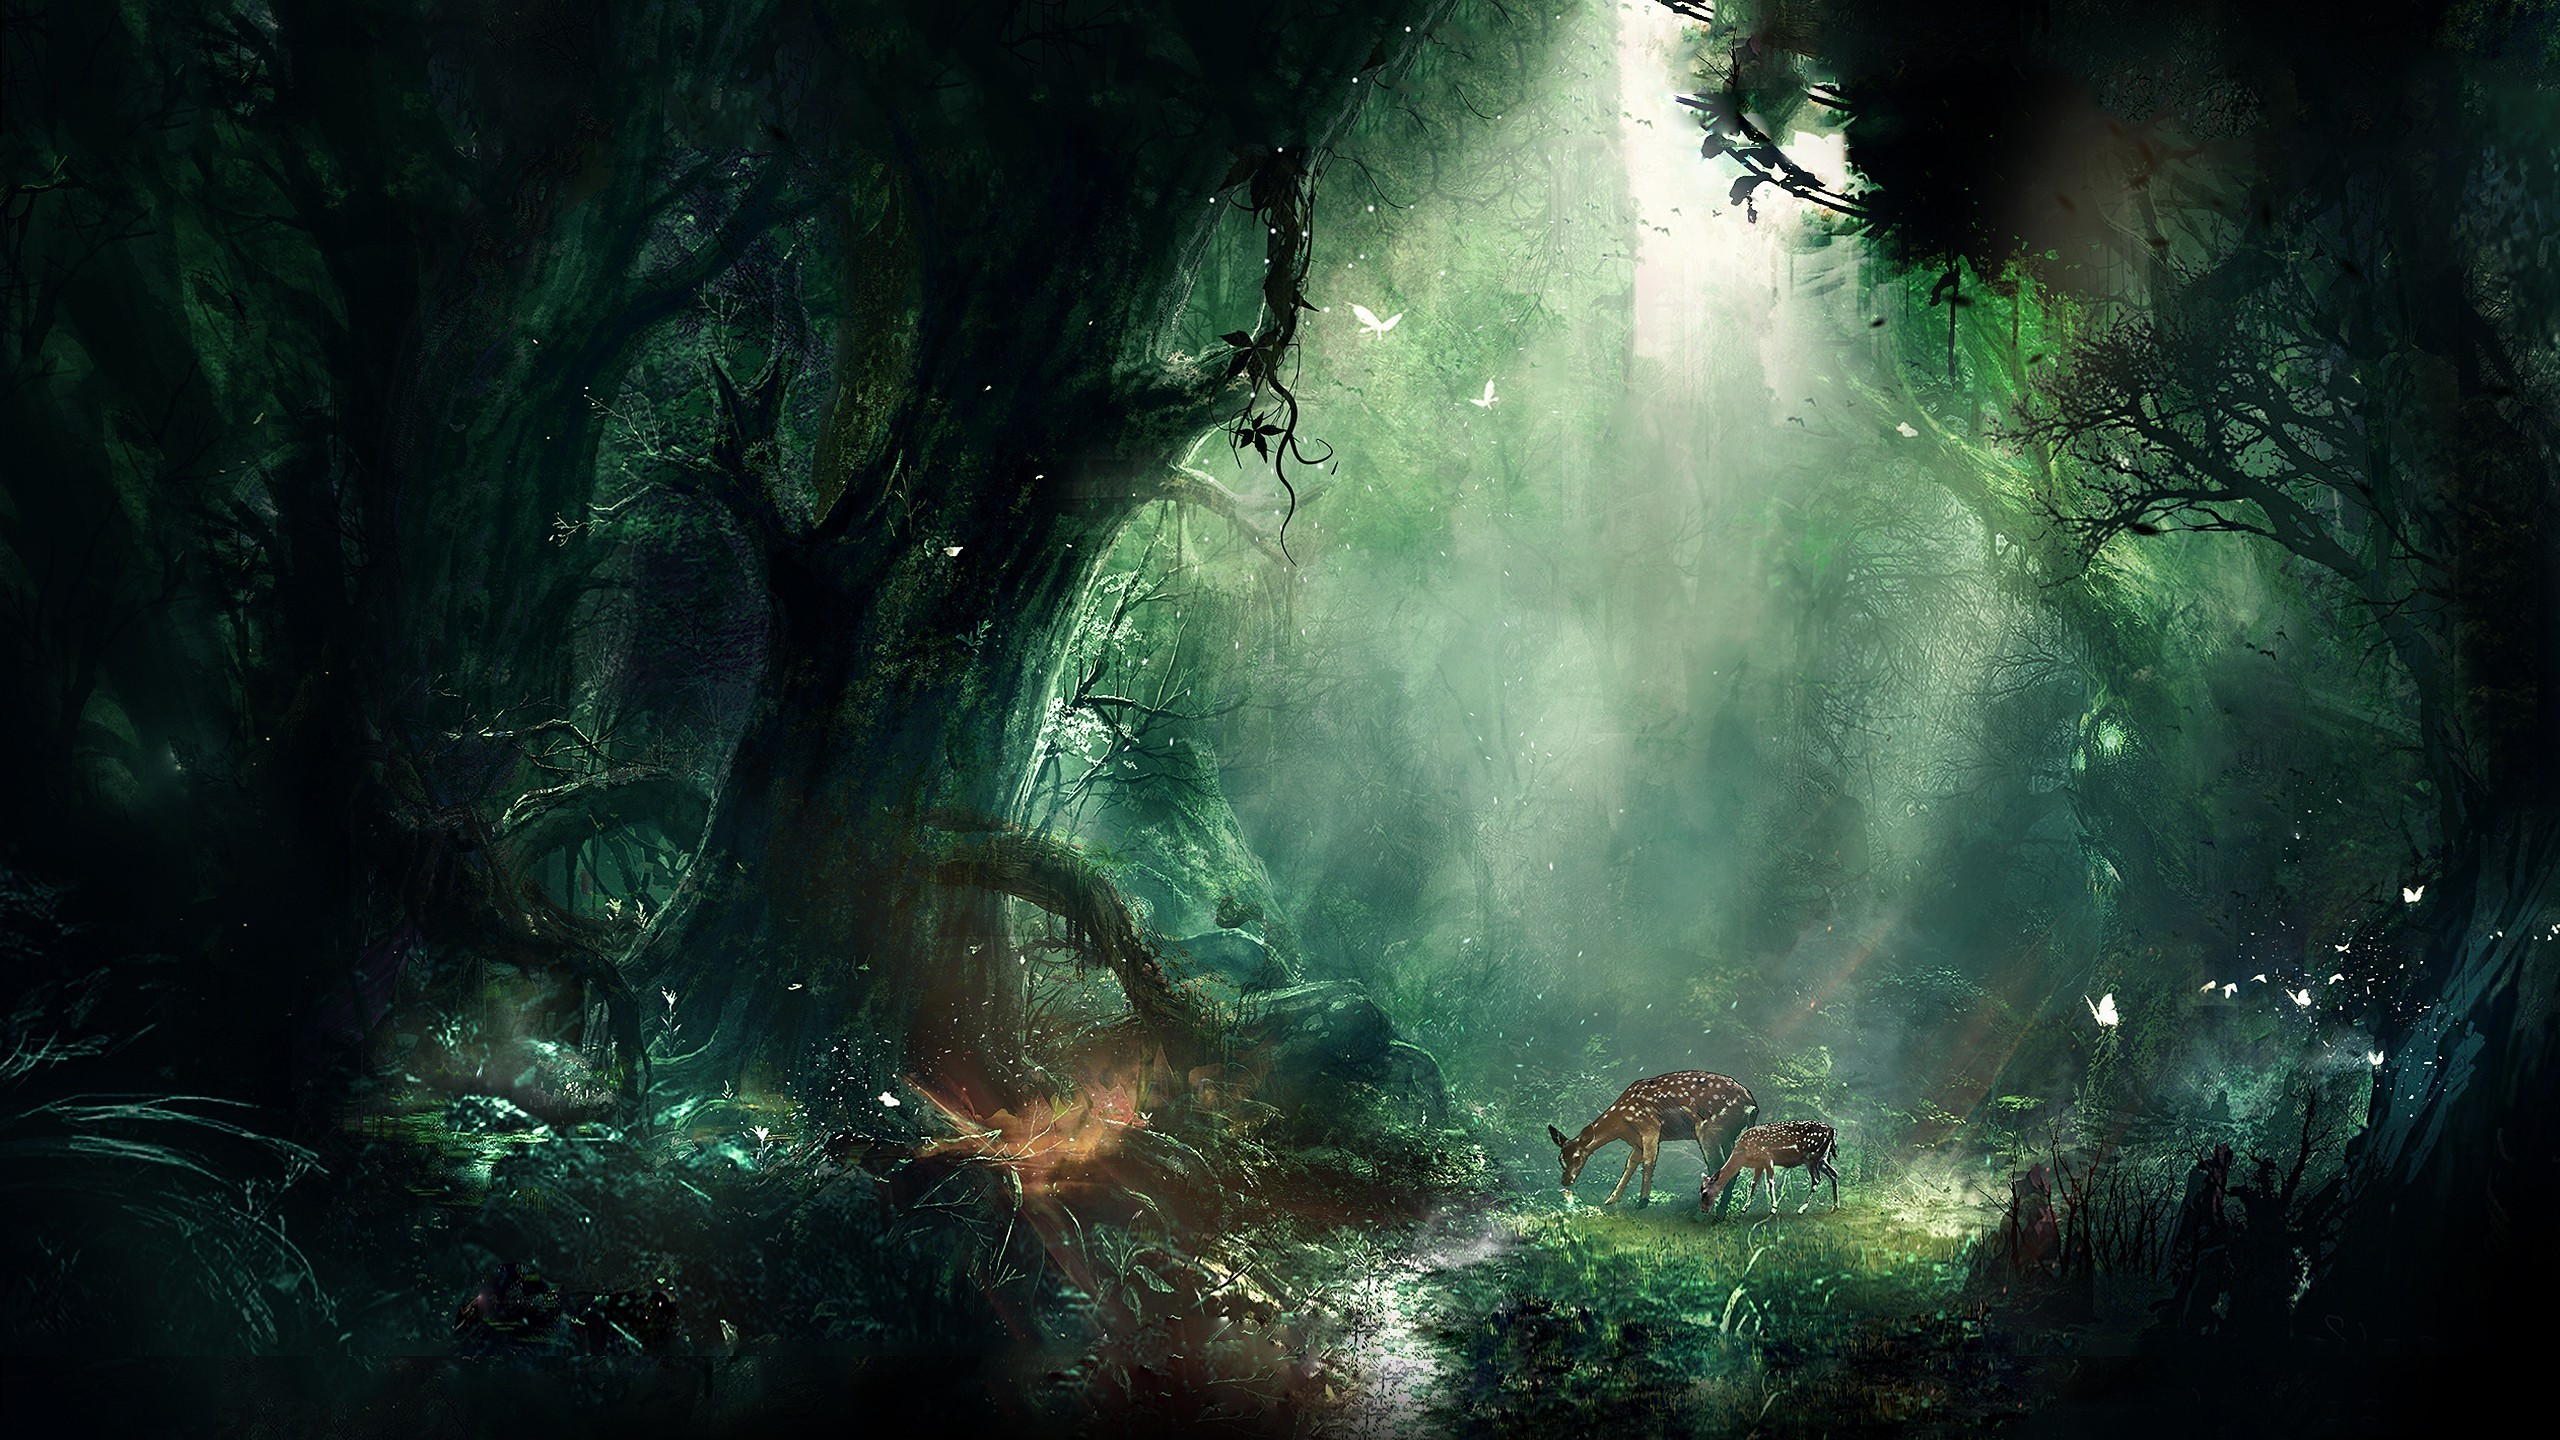 Fantasy Nature Wallpapers Hd 71 Images